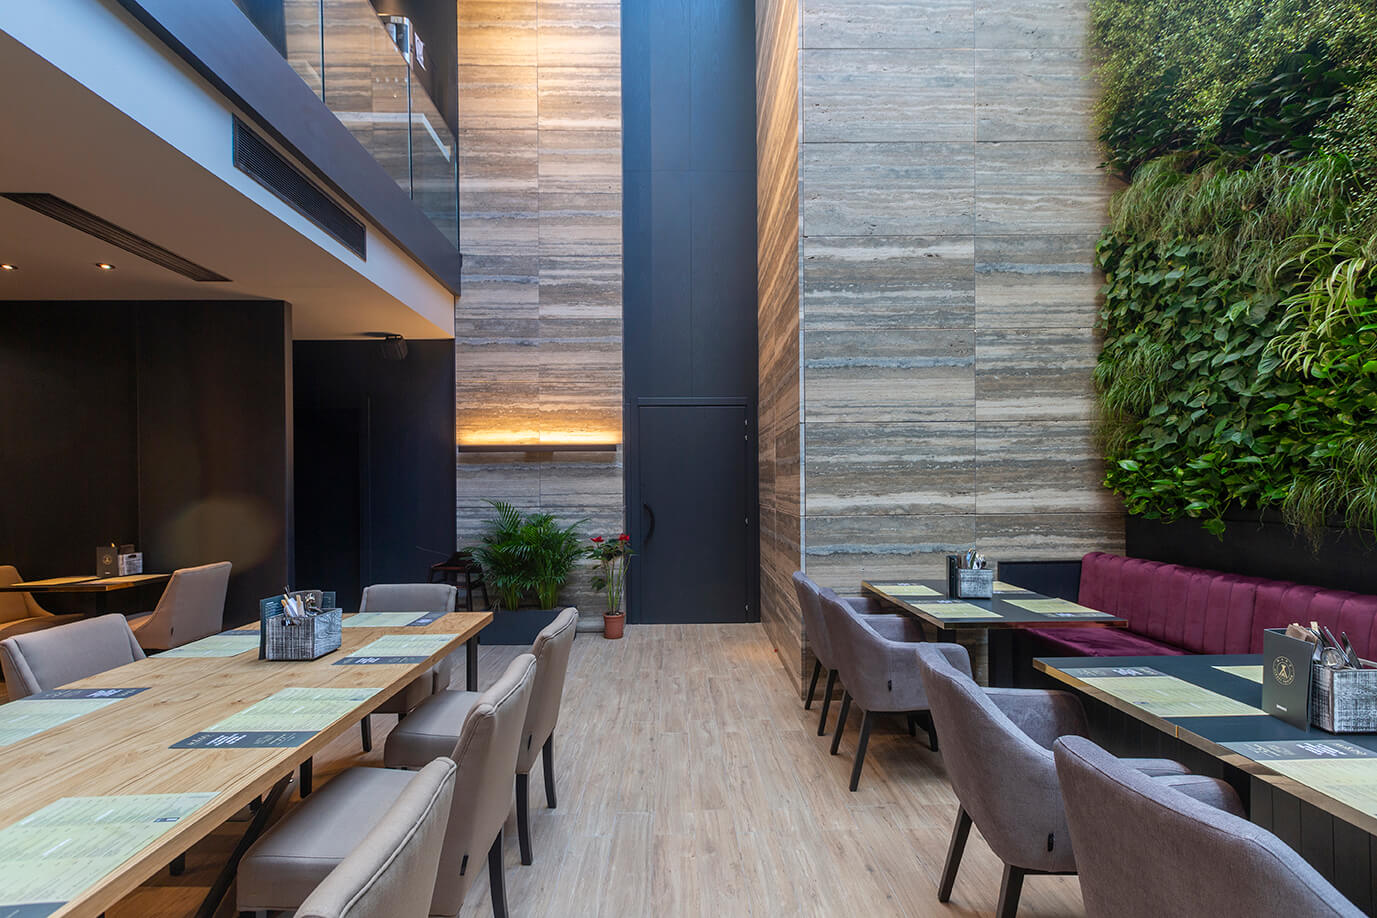 07 urban hotel travertine silver and parquet looking tiles – halmann vella